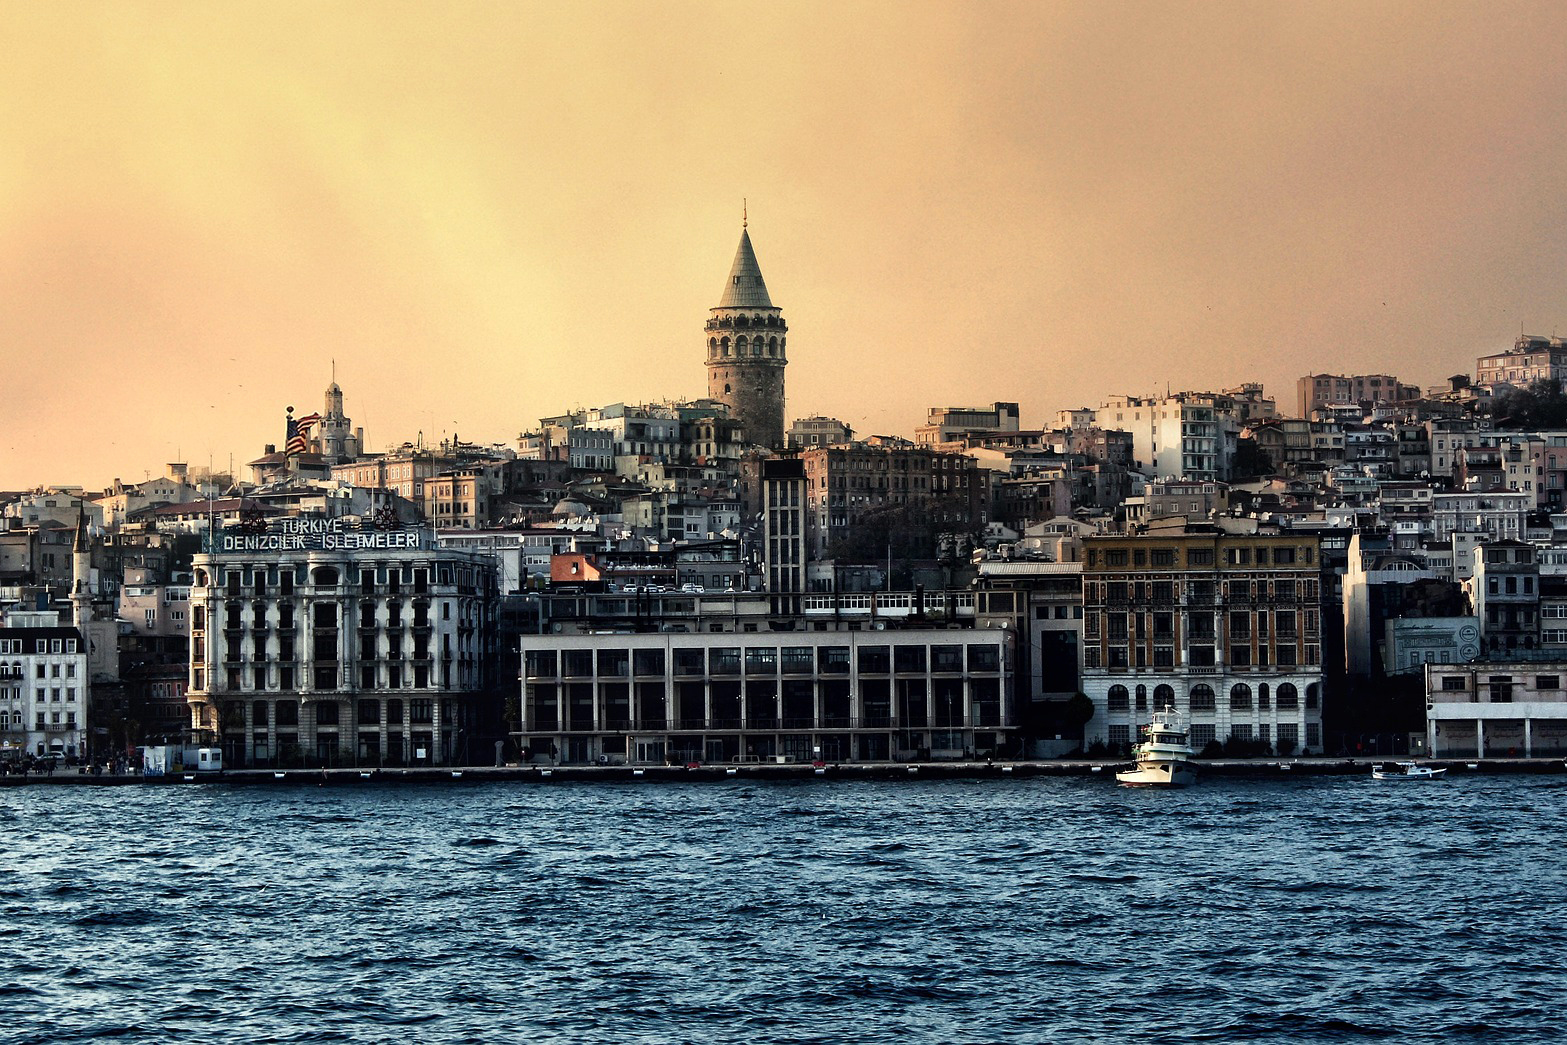 Istanbul – The city reflects cultural influences of the old empires